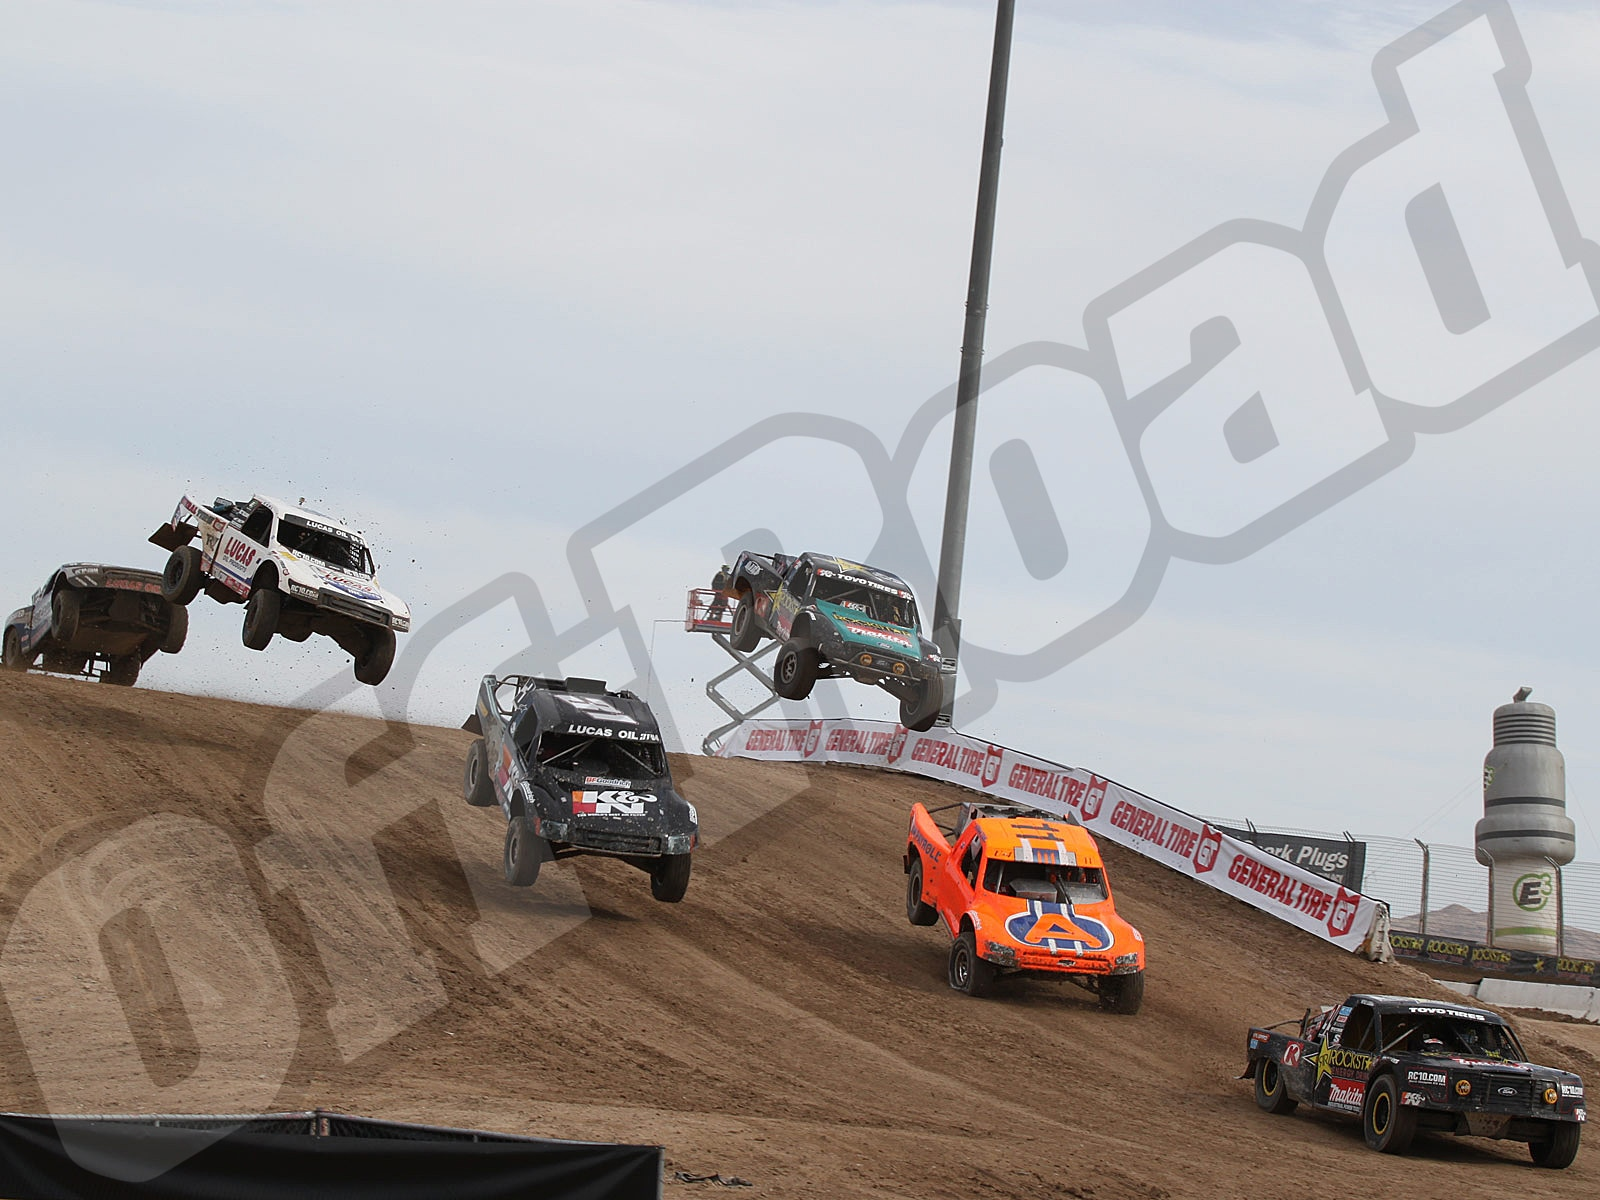 111010or 8627+lucas oil off road racing series+pro 4